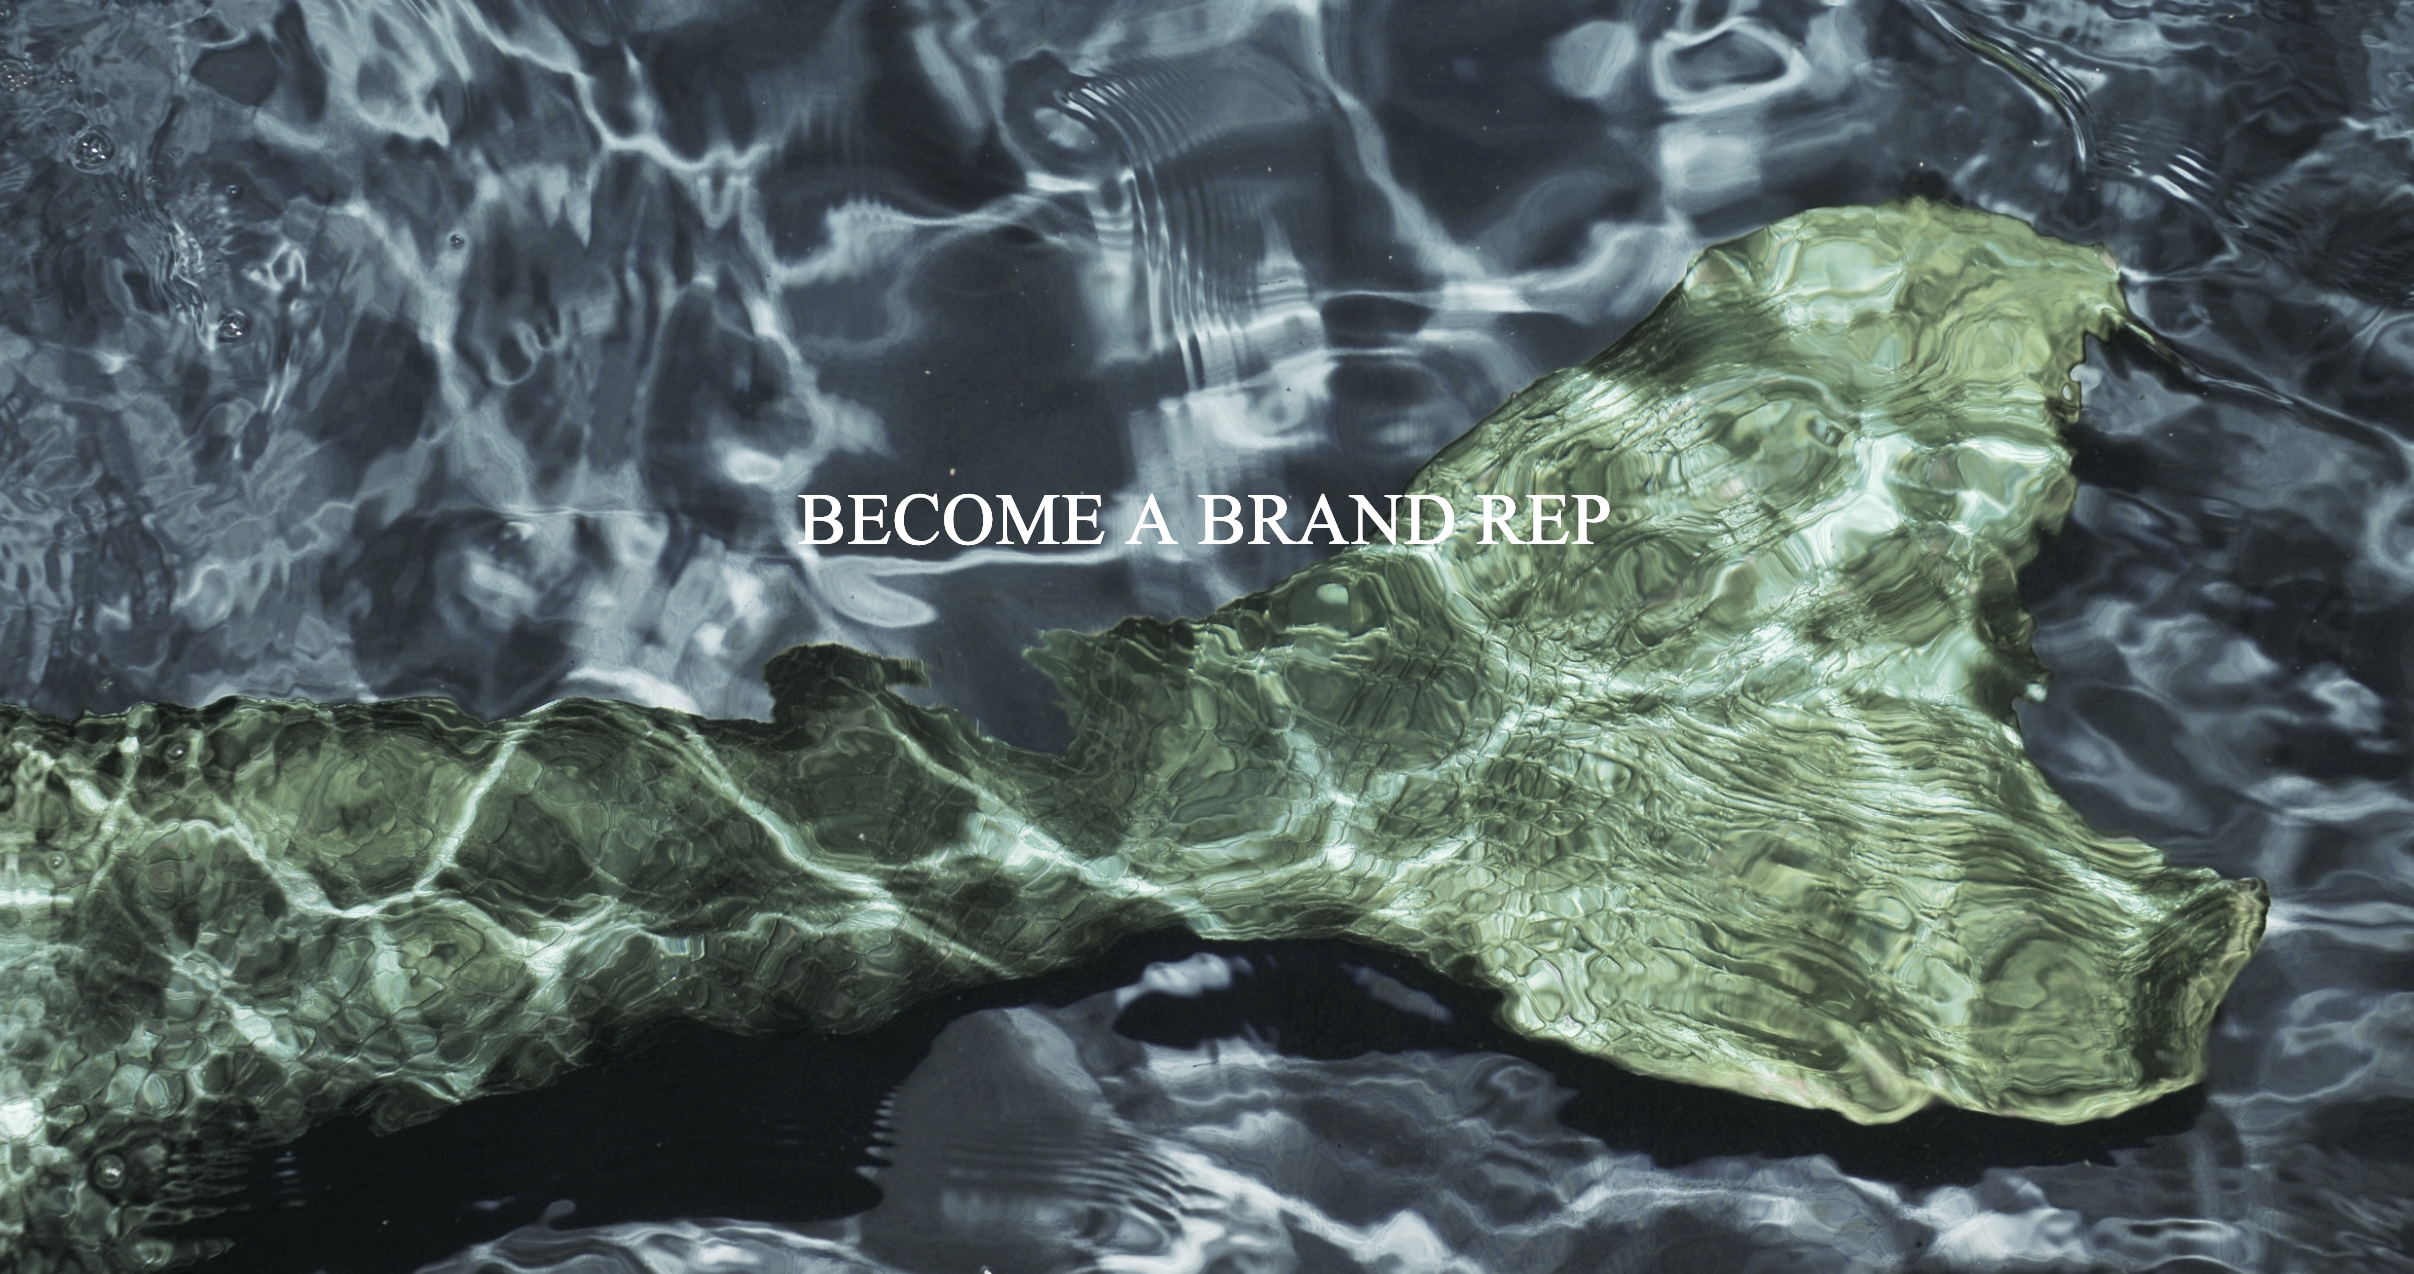 NOW LOOKING FOR - SIRENE BRAND REPS